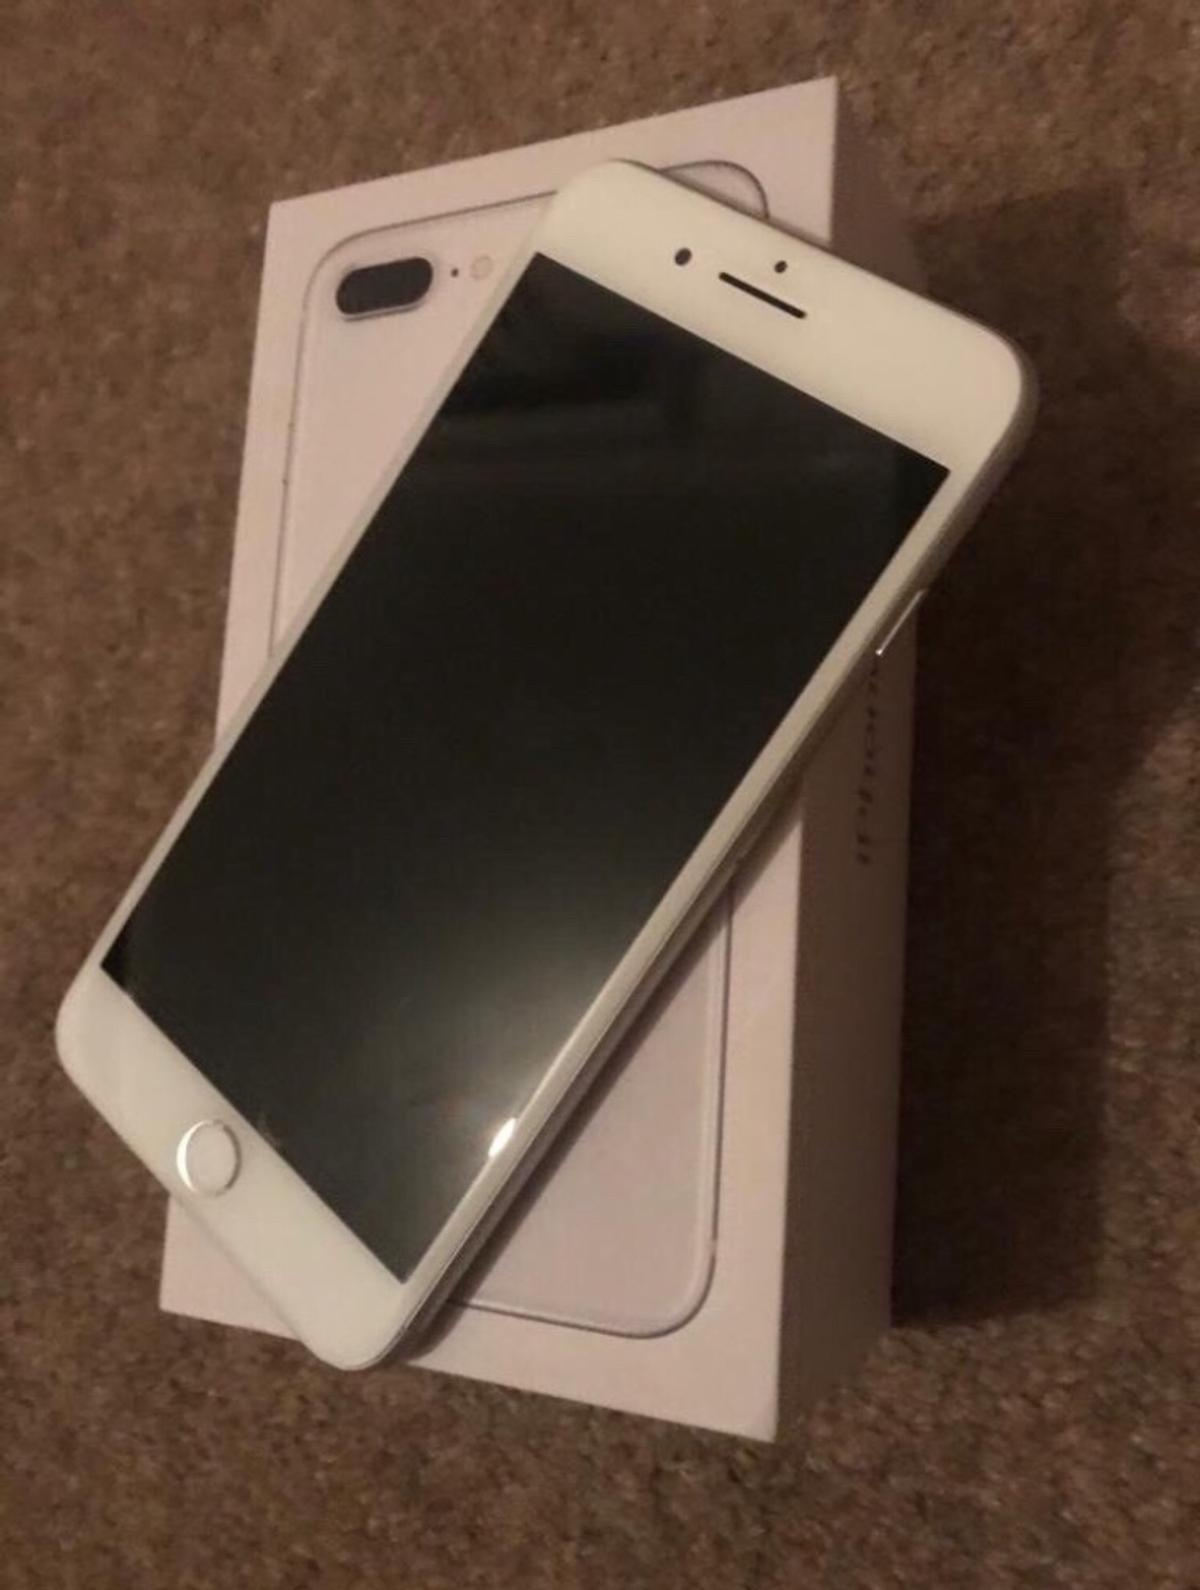 684bfb97205 Iphone 8 plus 256GB in BD8 Bradford for £280.00 for sale - Shpock